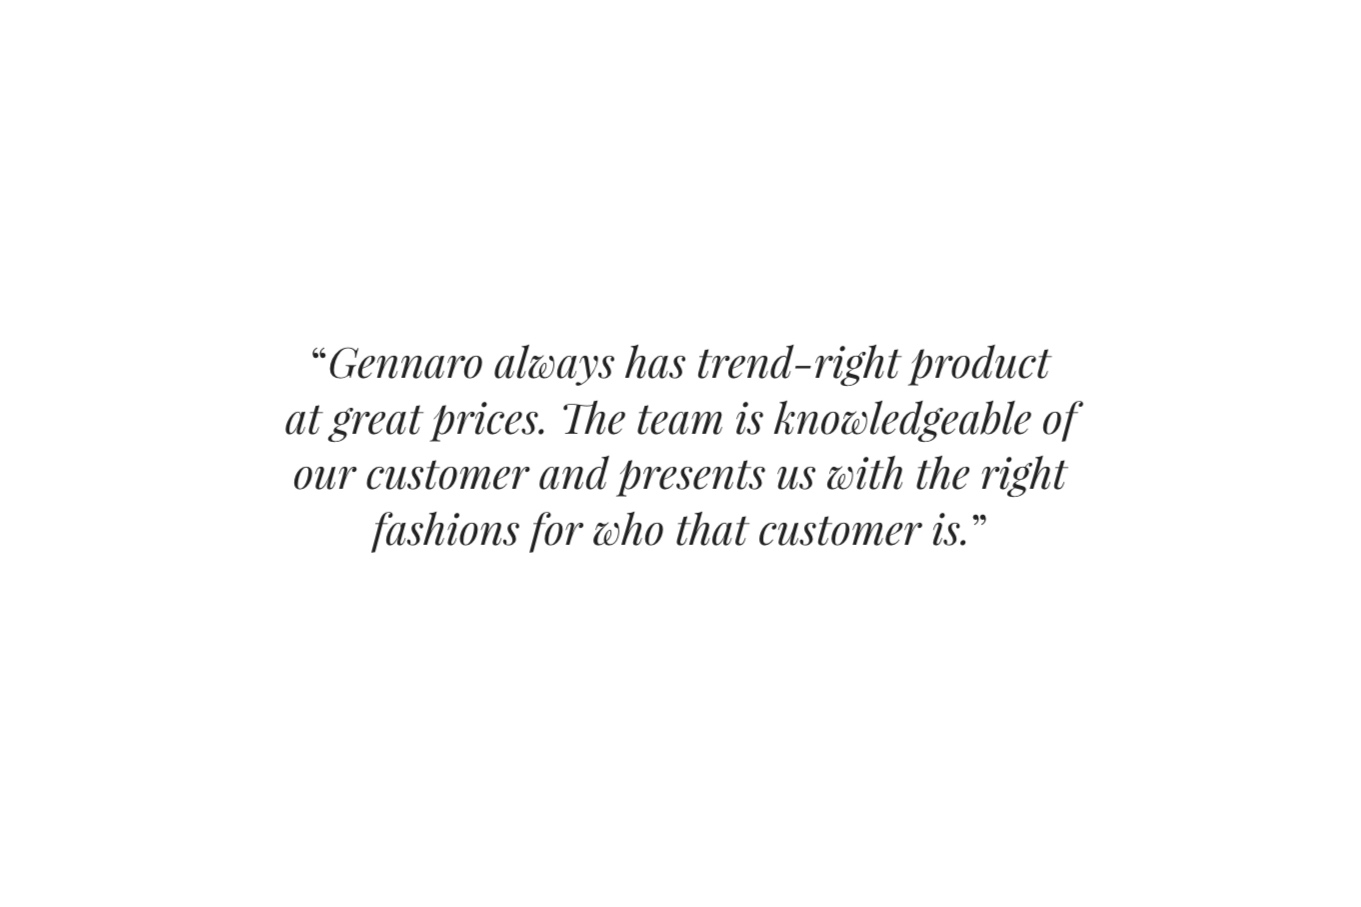 """ Gennaro always has trend-right product at great prices. The team is knowledgeable of our customer and presents us with the right fashions for who that customer is. """